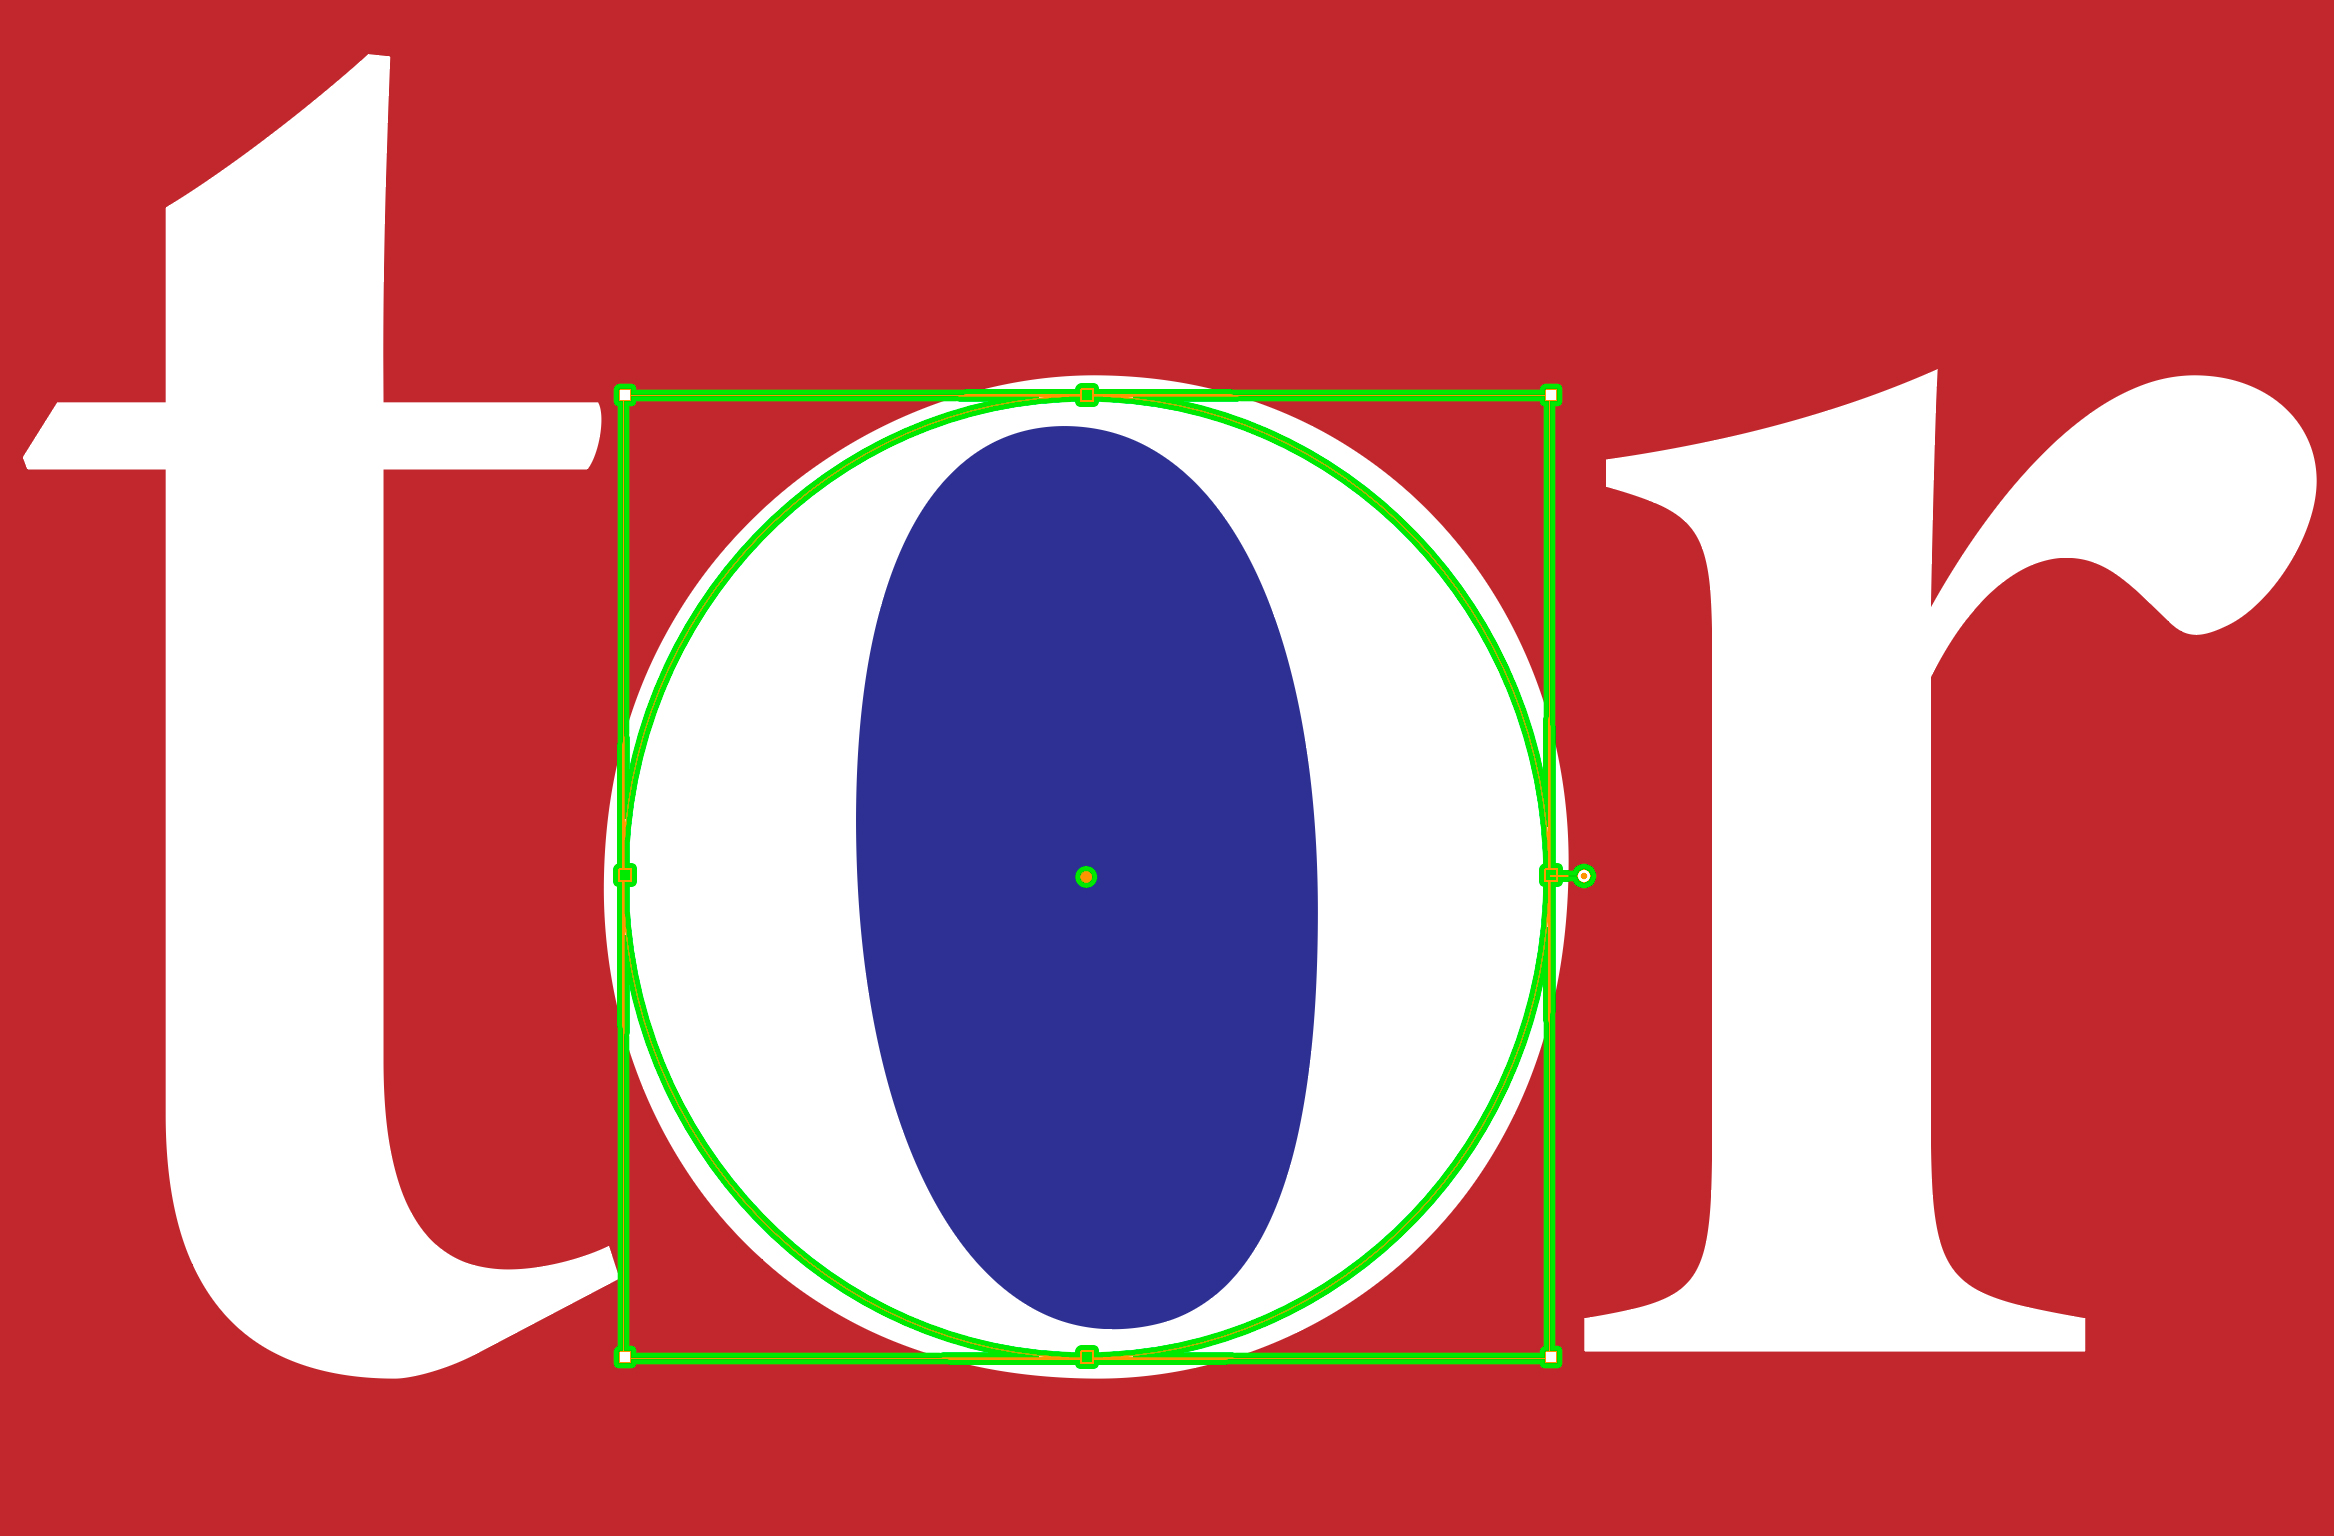 White letters t-o-r on a red field with the counter of the o turned blue